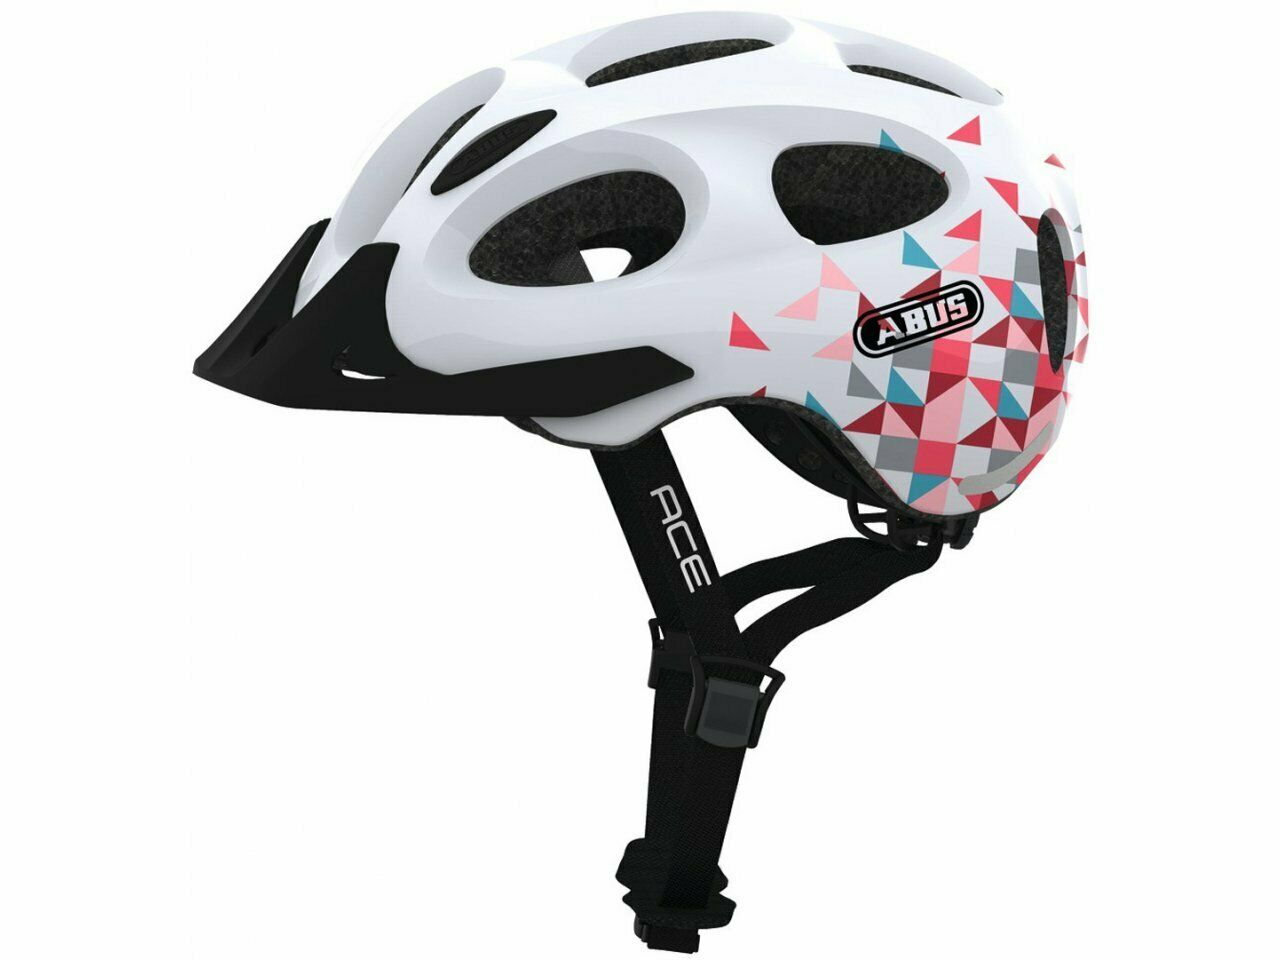 ABUS  Youn-I Ace Bicycle Helmet Medium 52-58 w  Rear Light  order now with big discount & free delivery